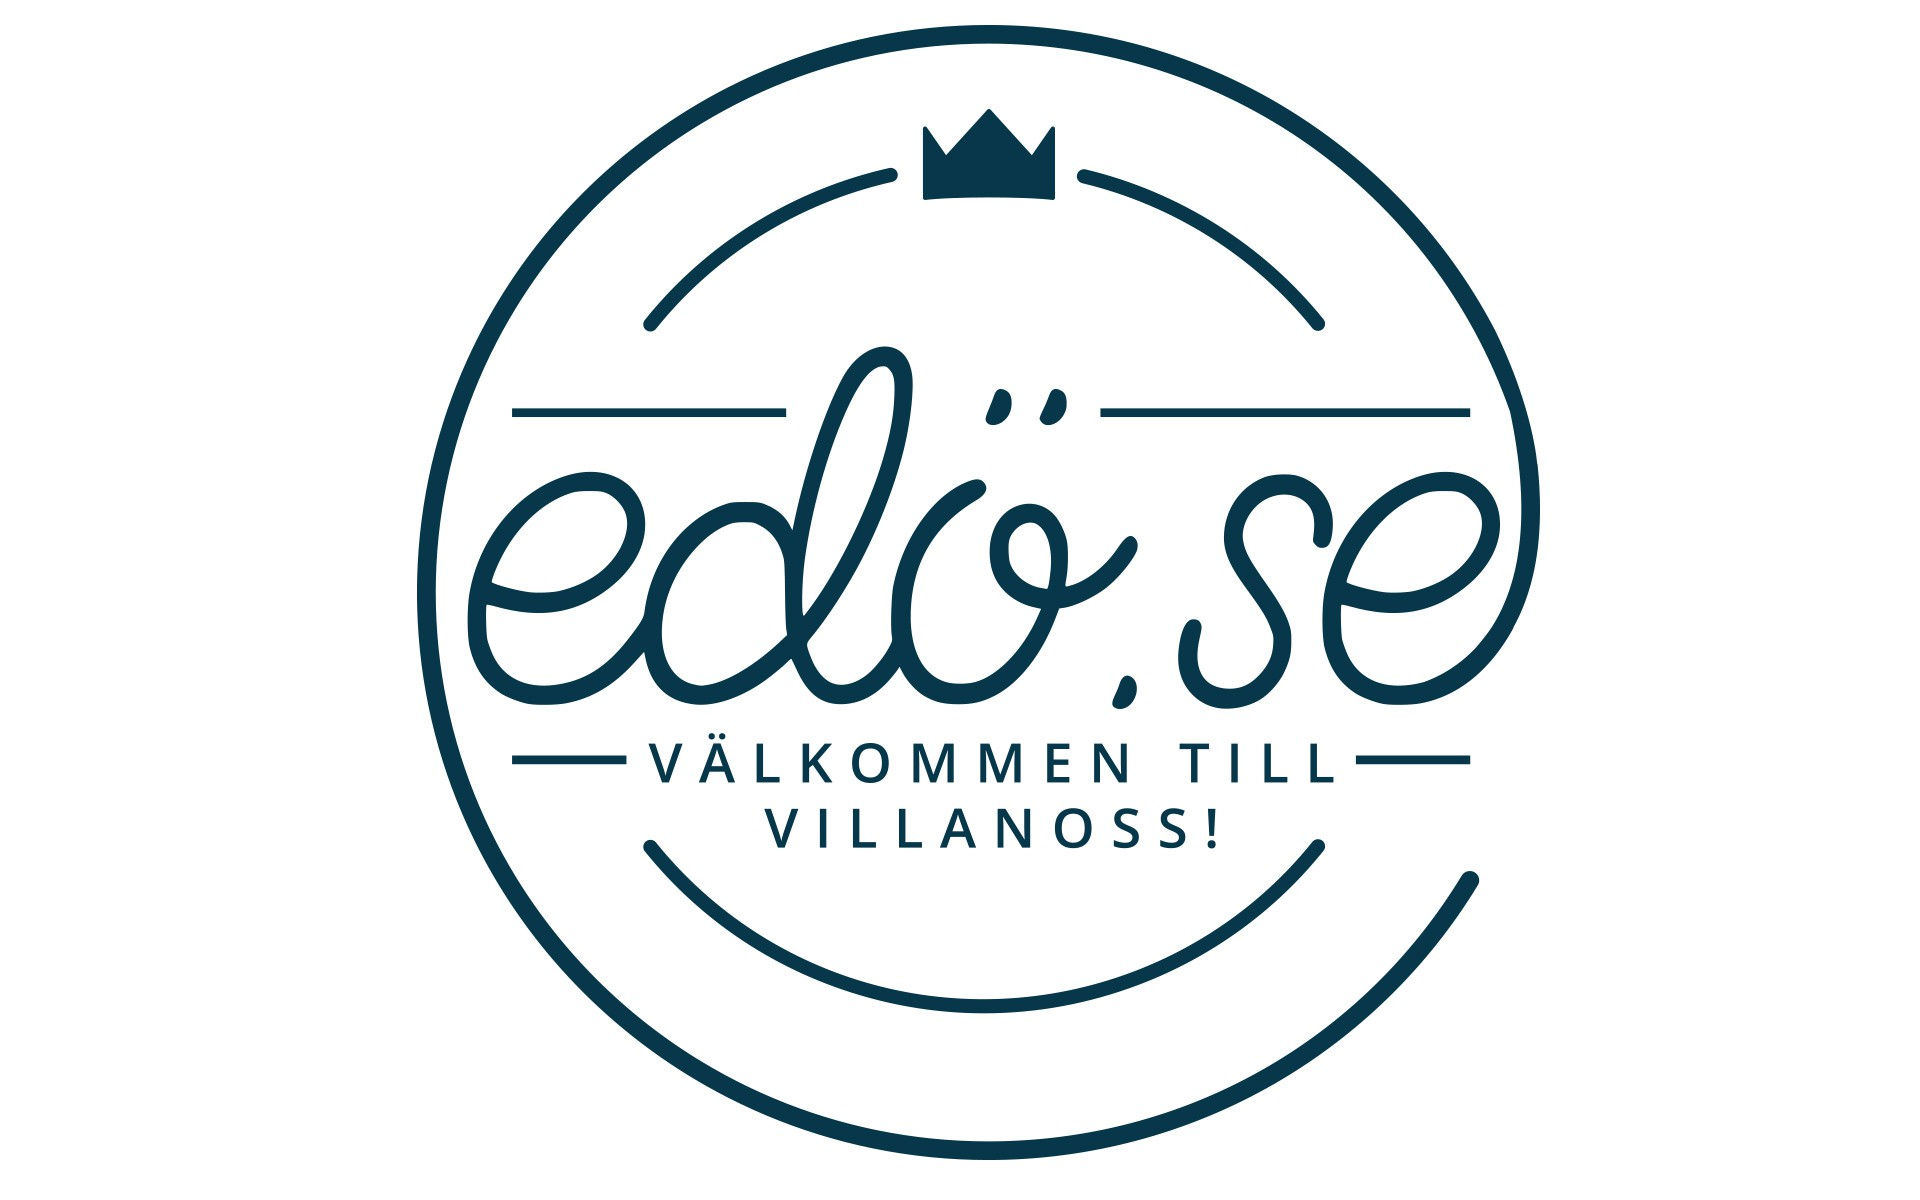 Create a logo for an amazing place in Sweden